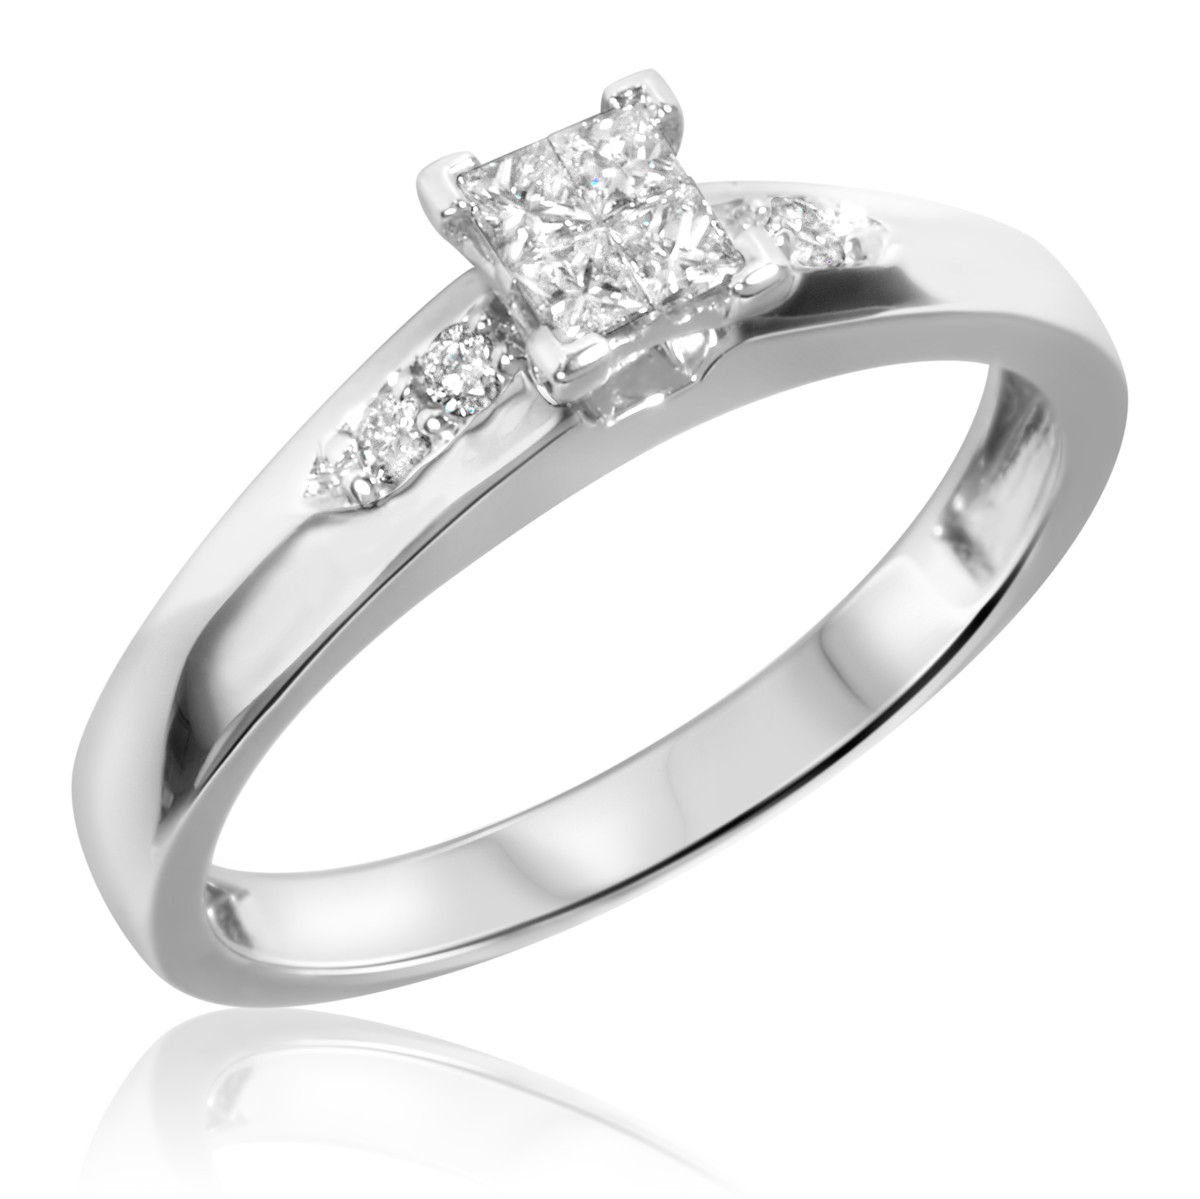 1/5 Carat T.W. Diamond Ladies' Engagement Ring 10K White Gold